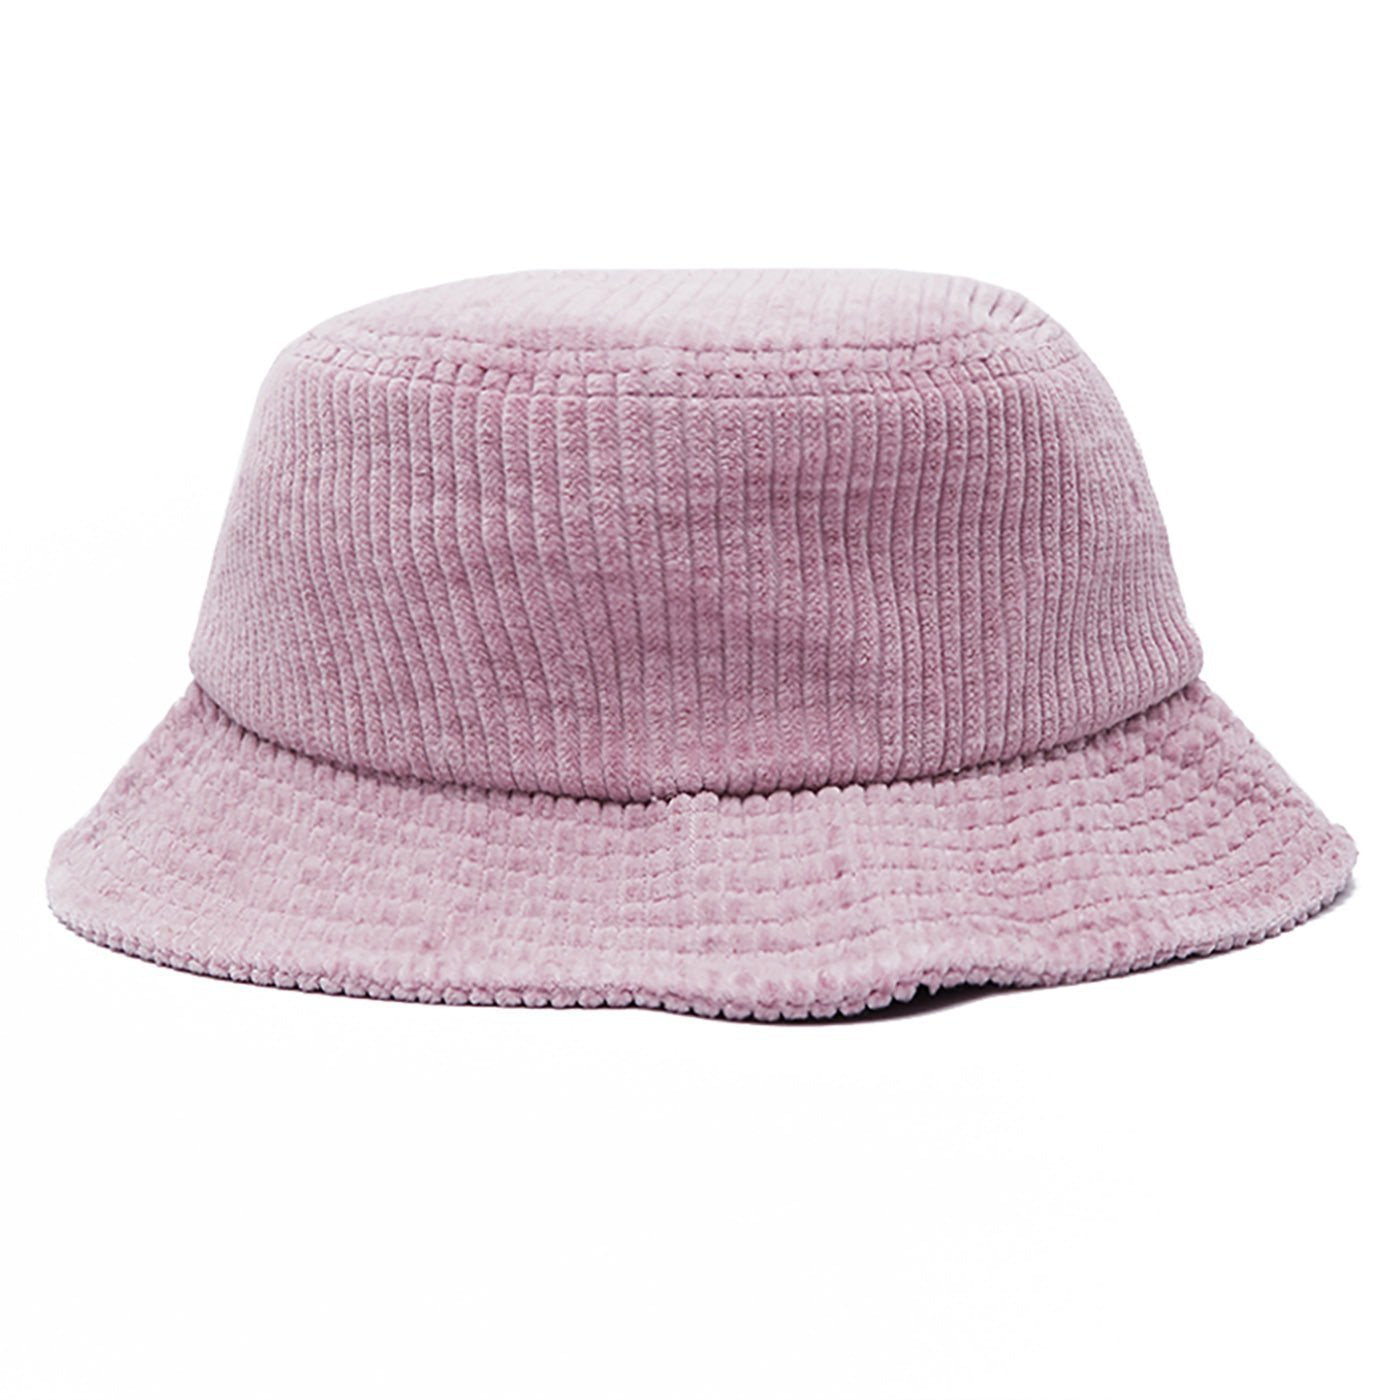 Bold Cord Bucket Hat - Dusty Rose